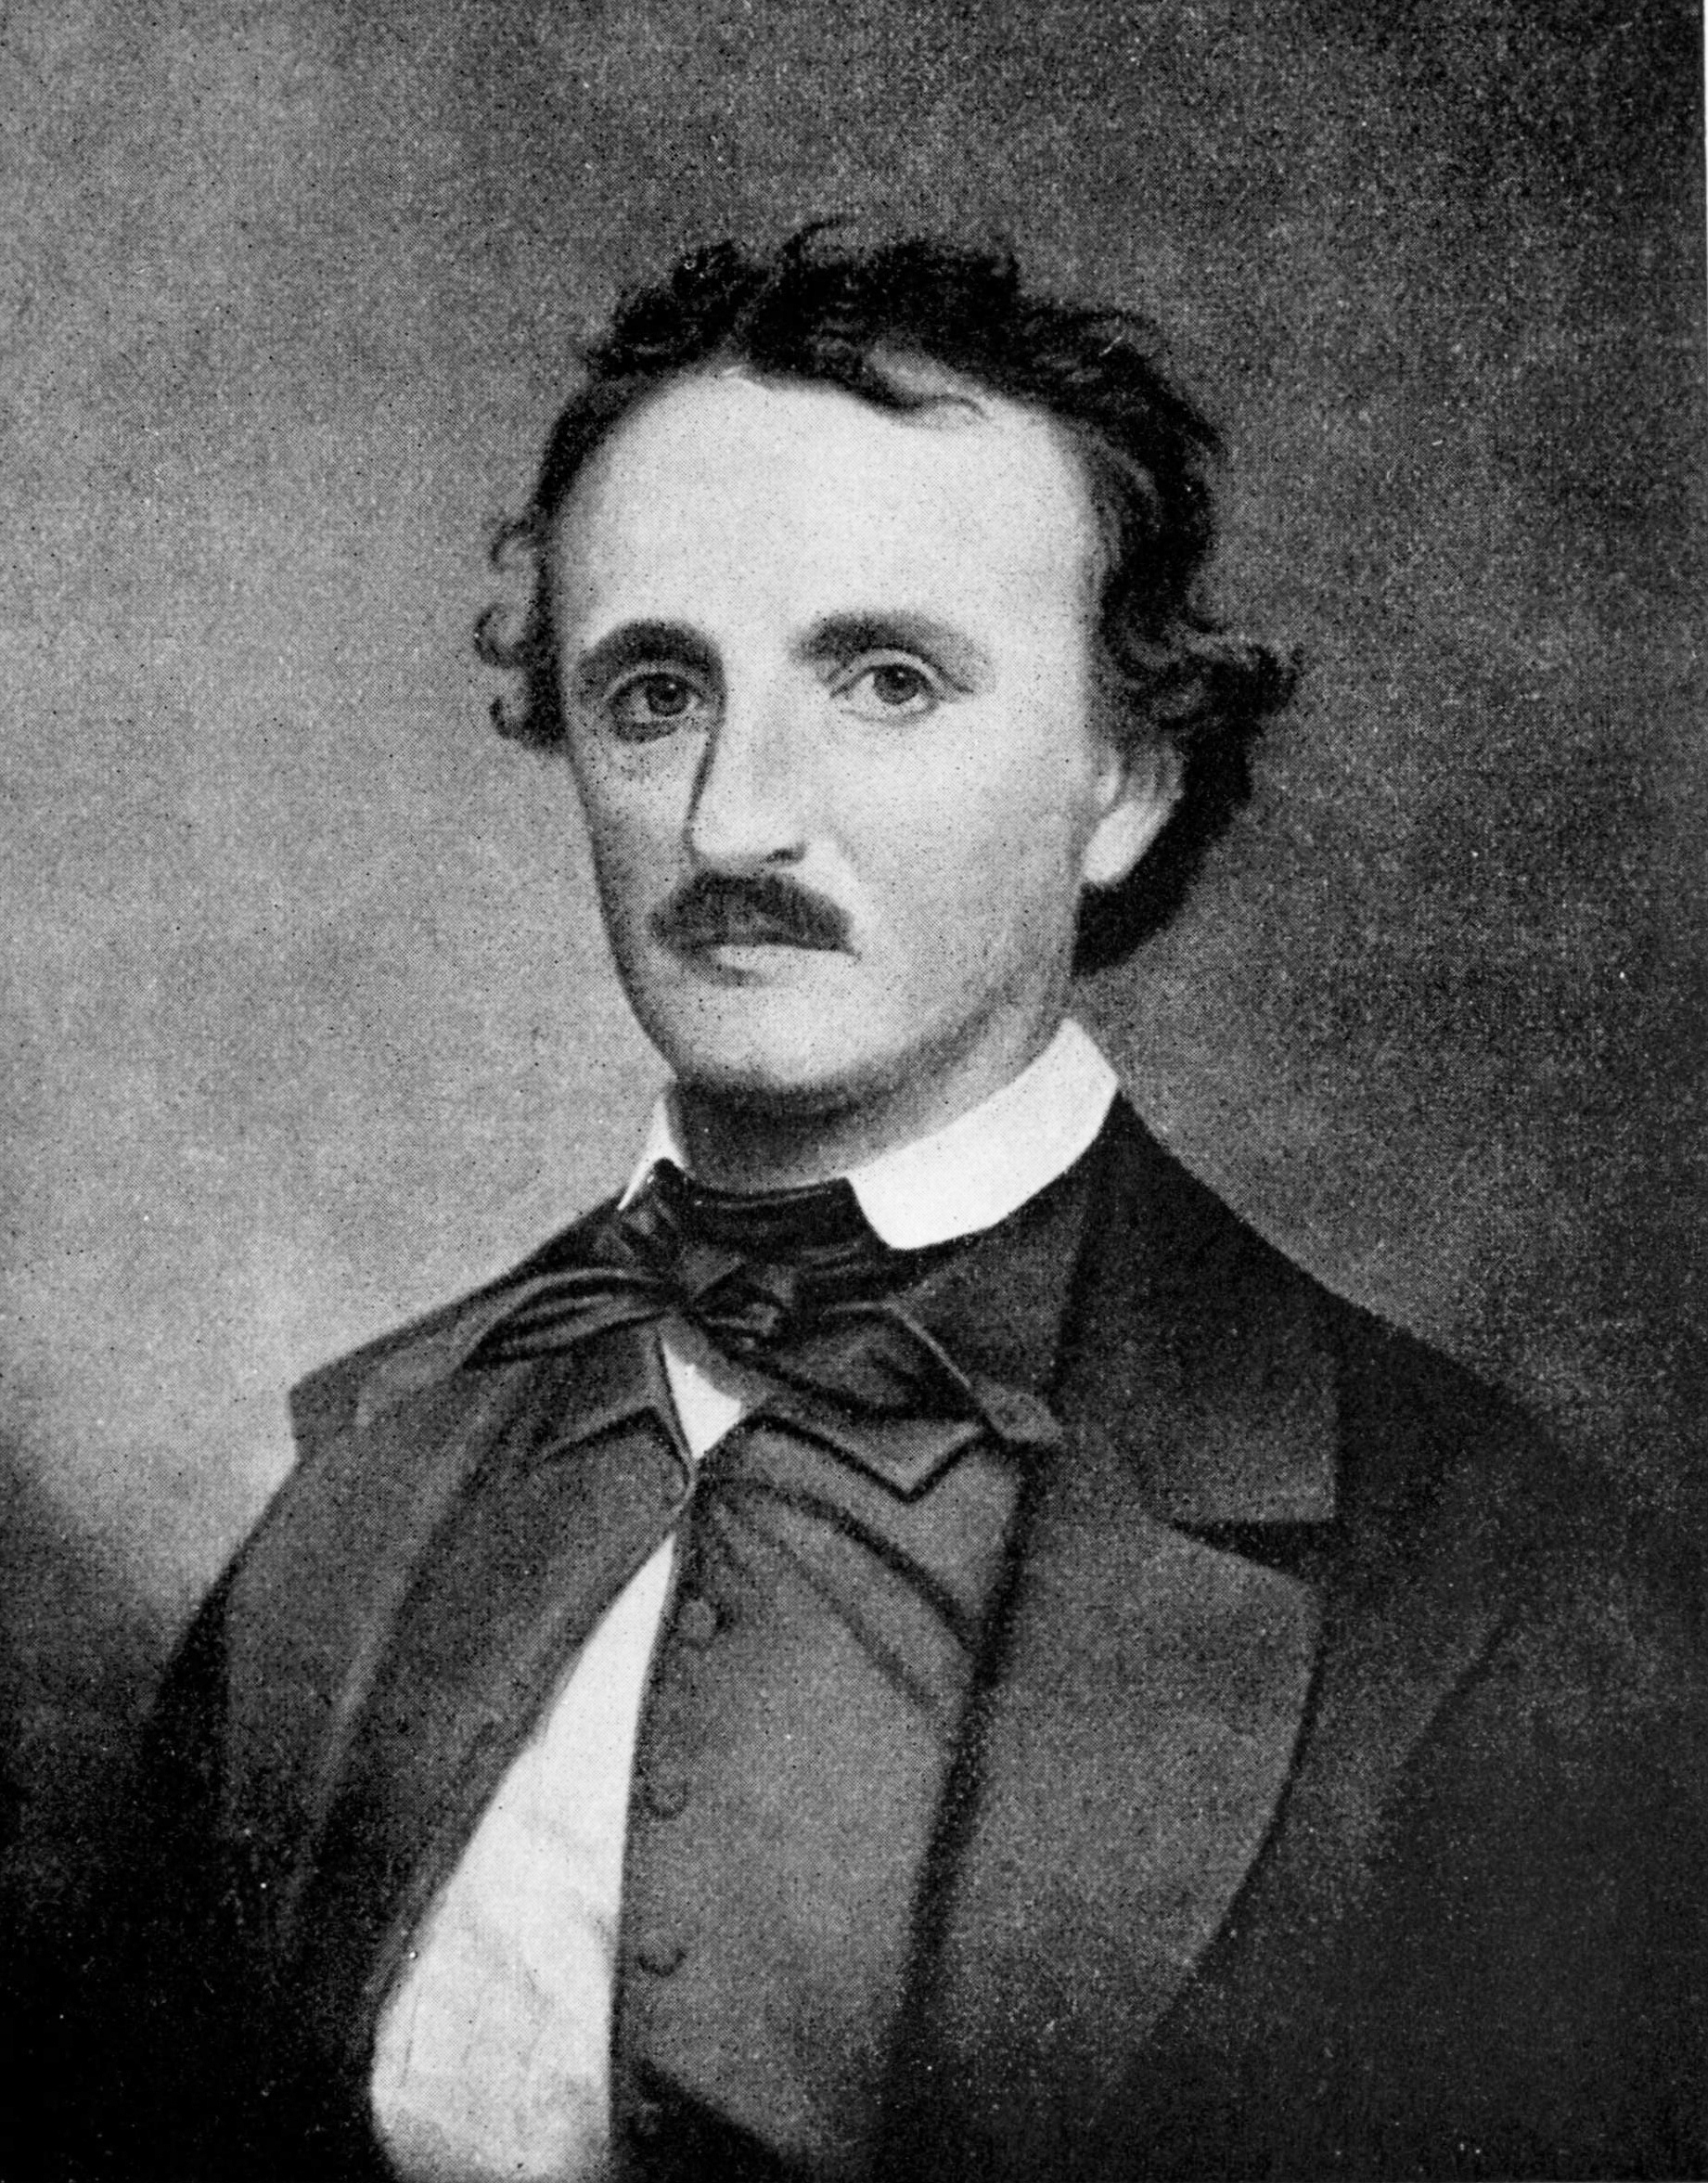 Less Is More The Oval Portrait By Edgar Allan Poe This